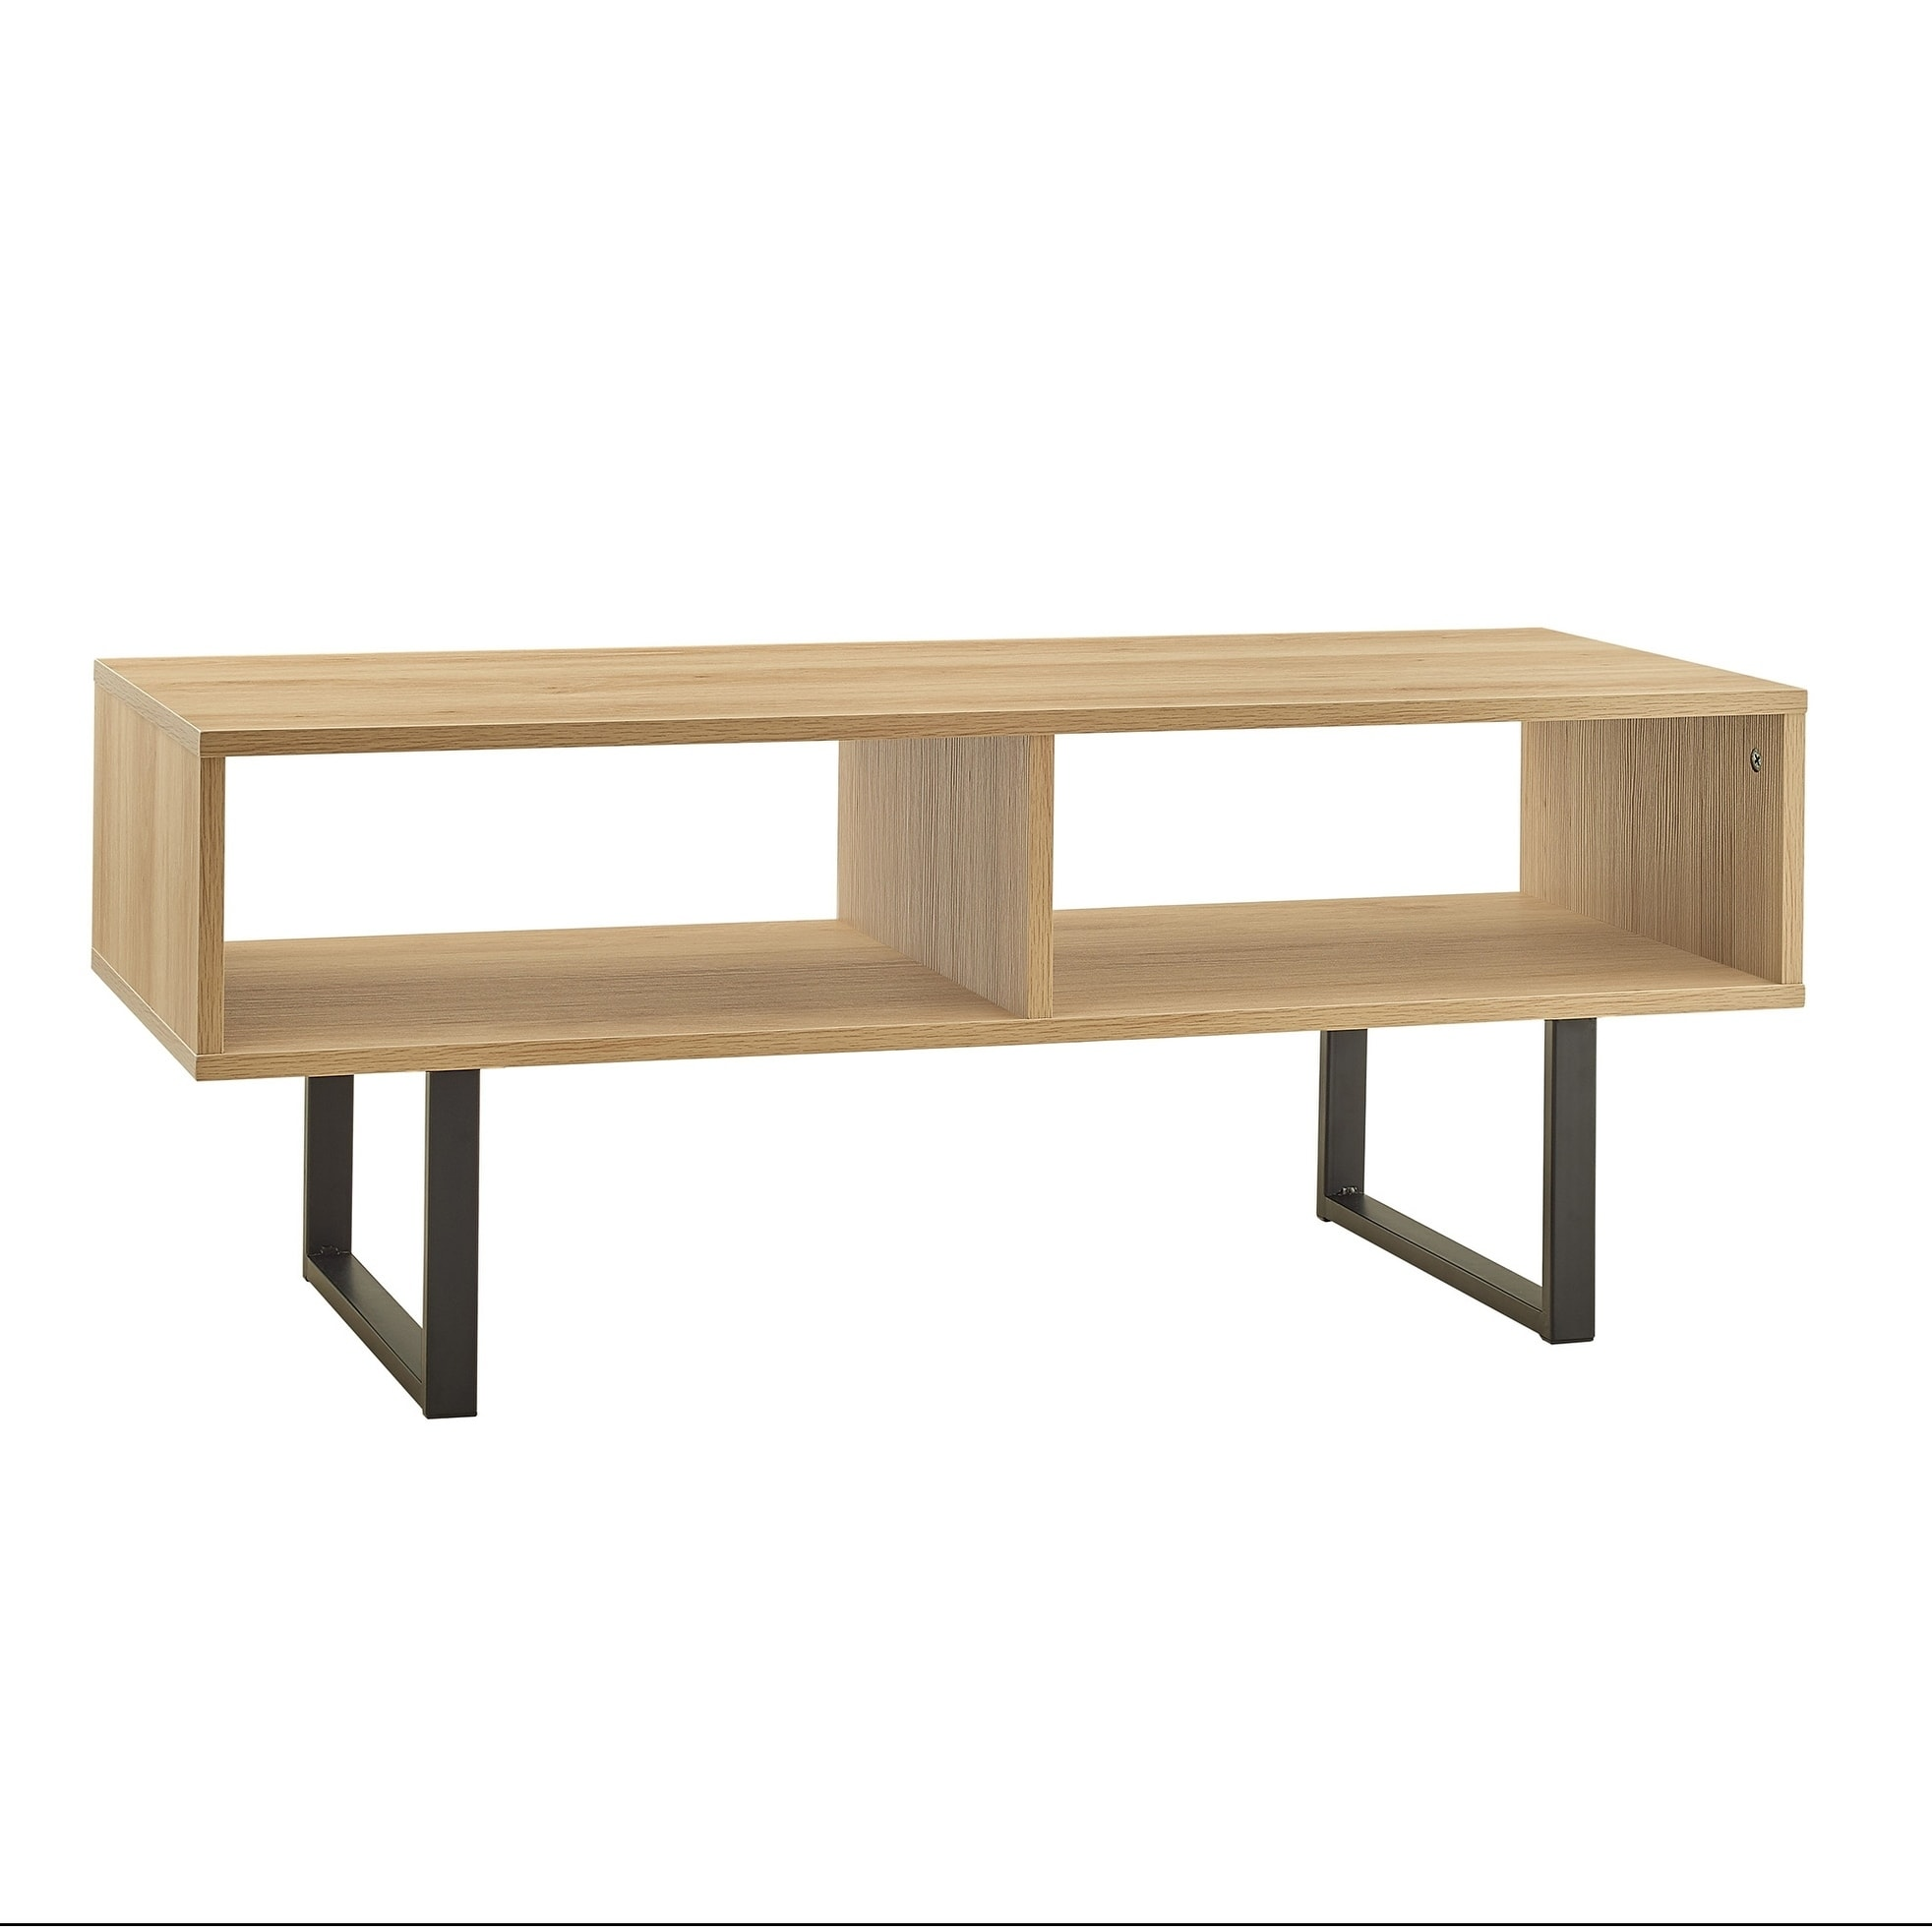 Carbon Loft Morse Industrial Coffee Table (2 Options Available)